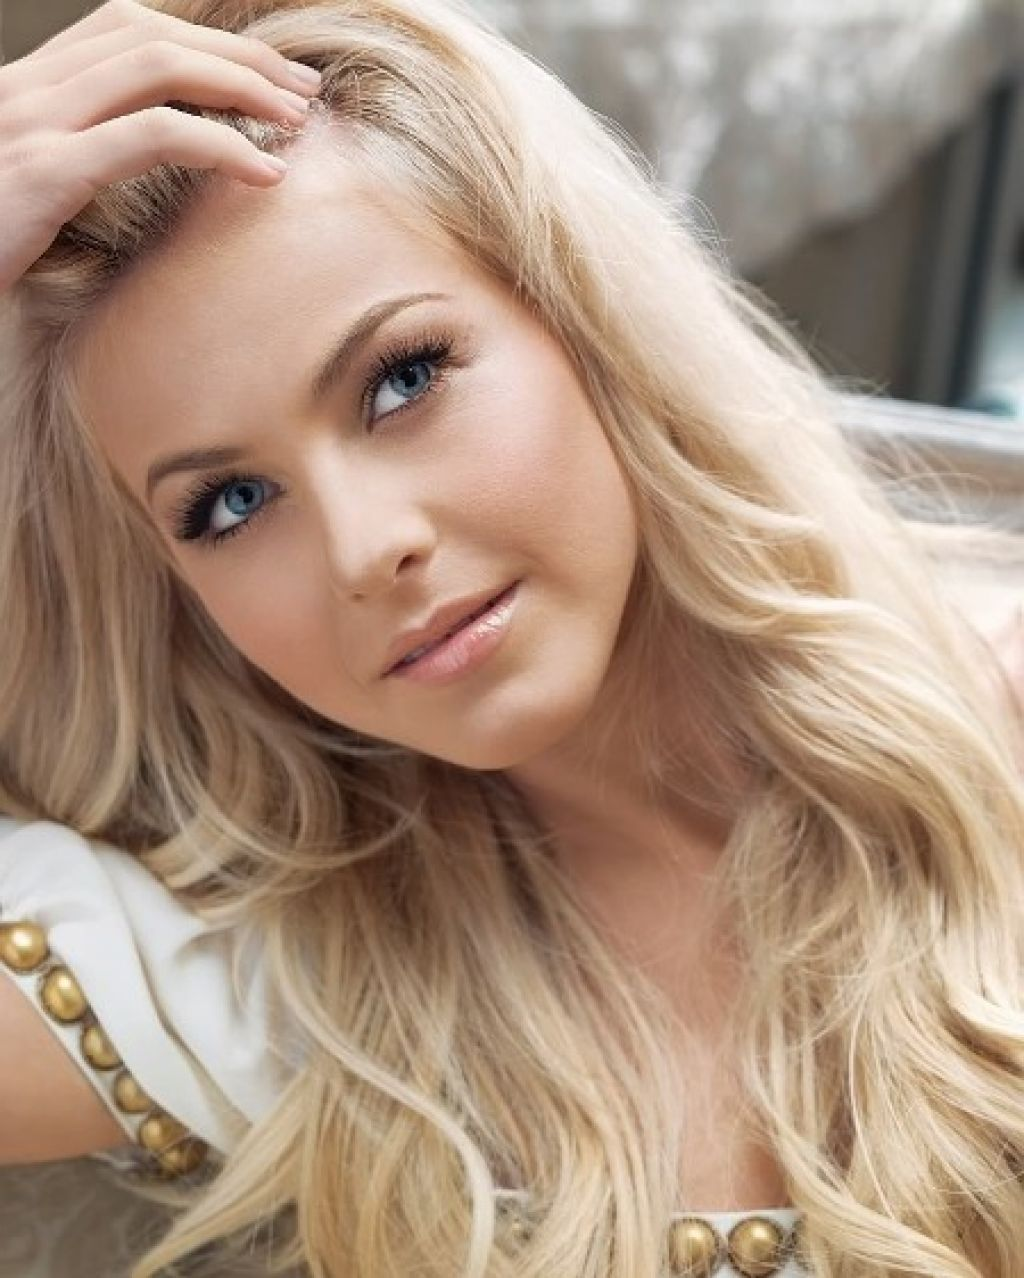 Blonde Hair Color Ideas For Blue Eyes Best Hair Color For Brown Green Eyes Check More At Ht Blonde Hair Pale Skin Blonde Hair Color Caramel Blonde Hair Color